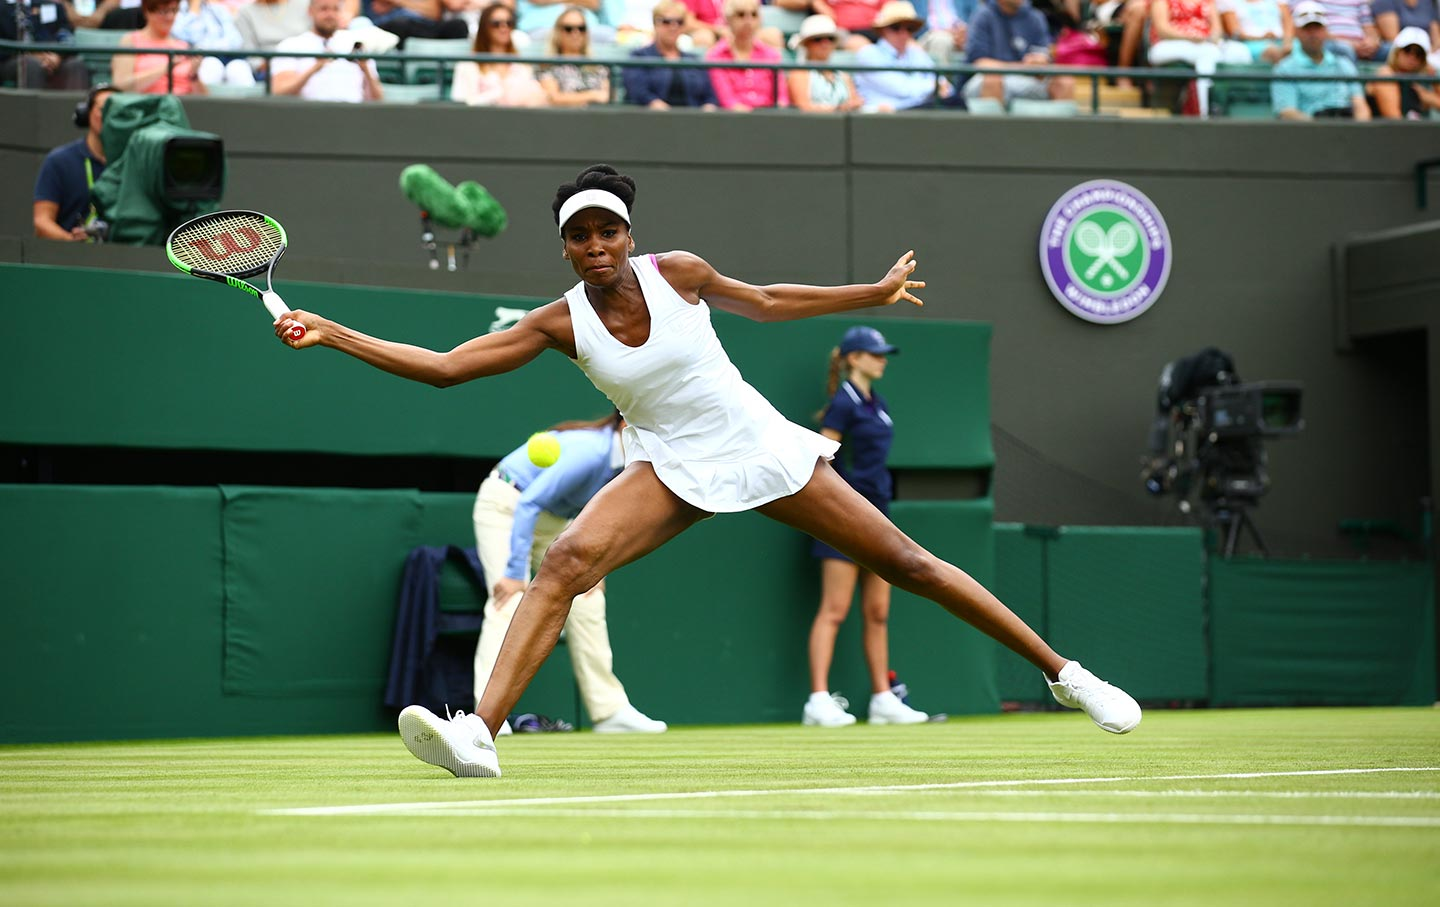 venus williams ap img - Venus Williams Beats Johana Konta to Reach Wimbledon 2017 Final